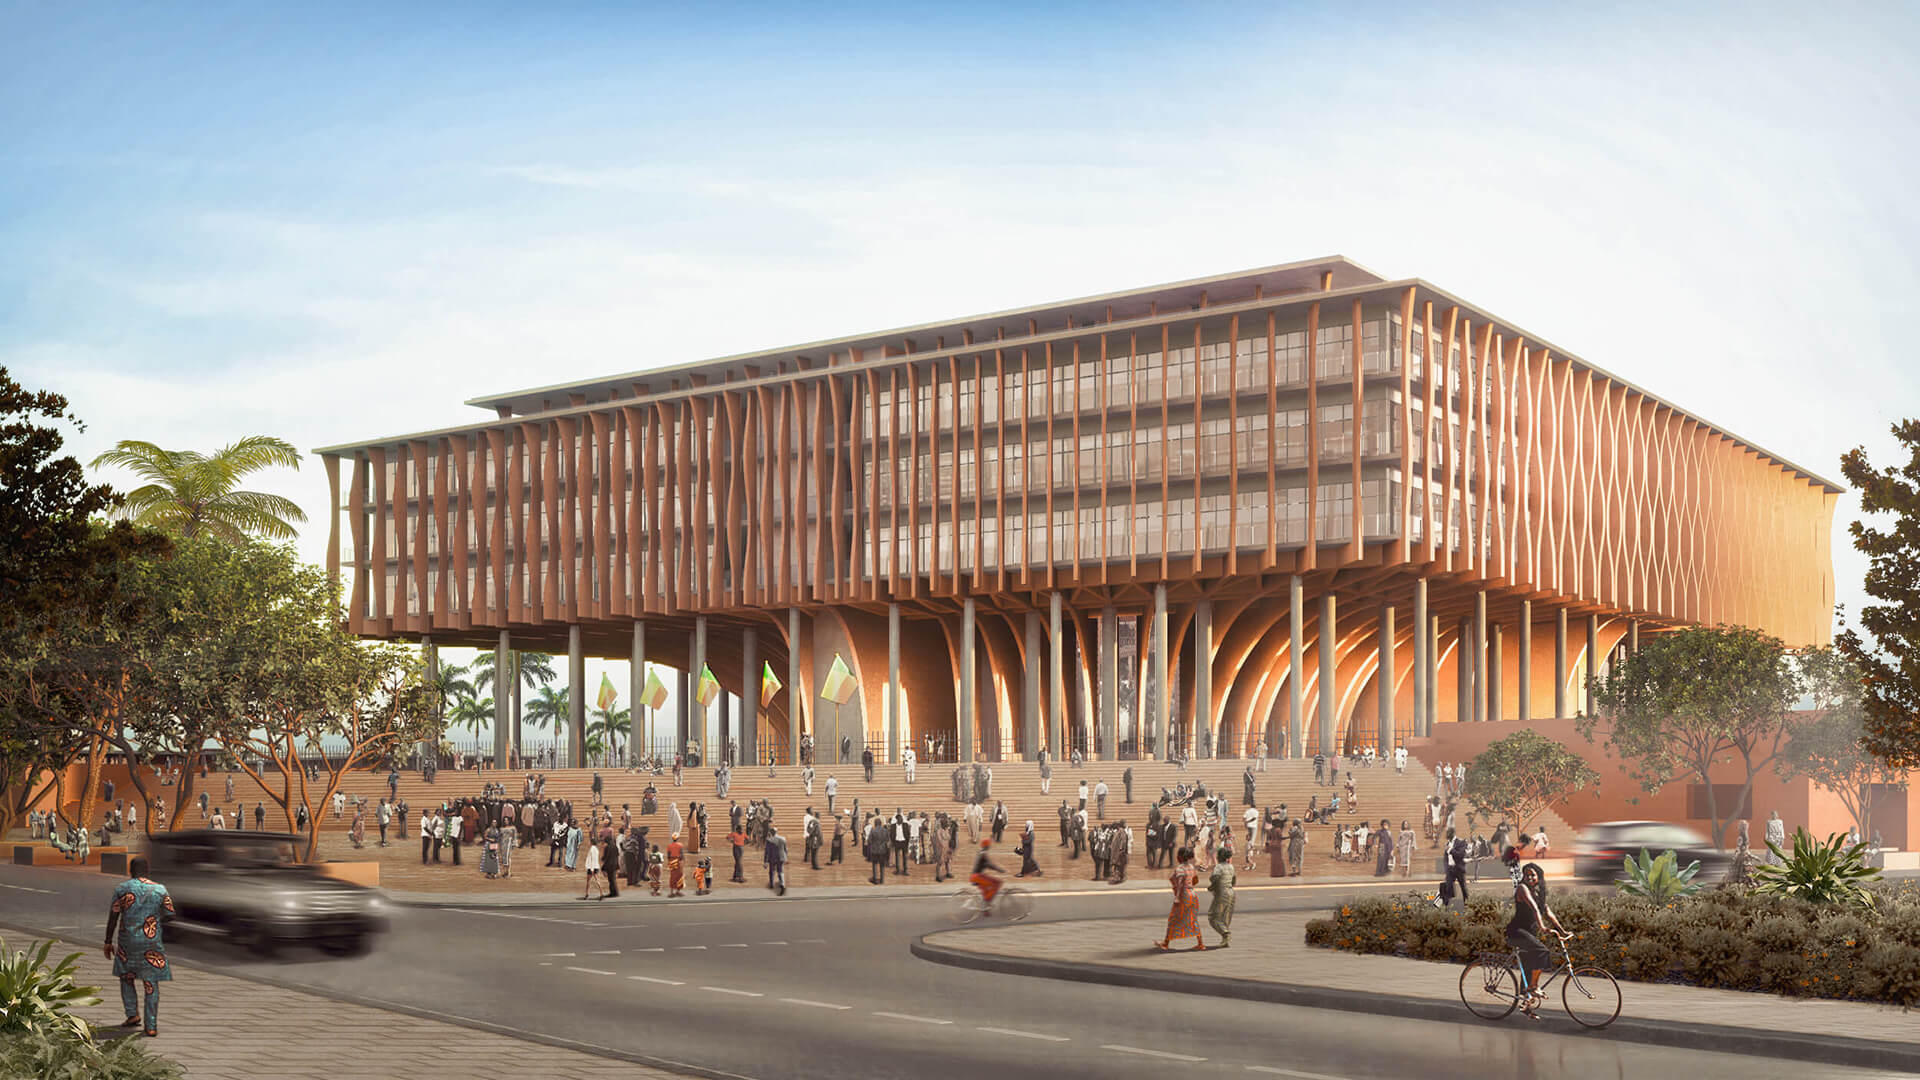 Benin's new National Assembly by Francis Kéré seeks inspiration from the African palaver tree | Benin National Assembly | Kéré Architecture | STIRworld